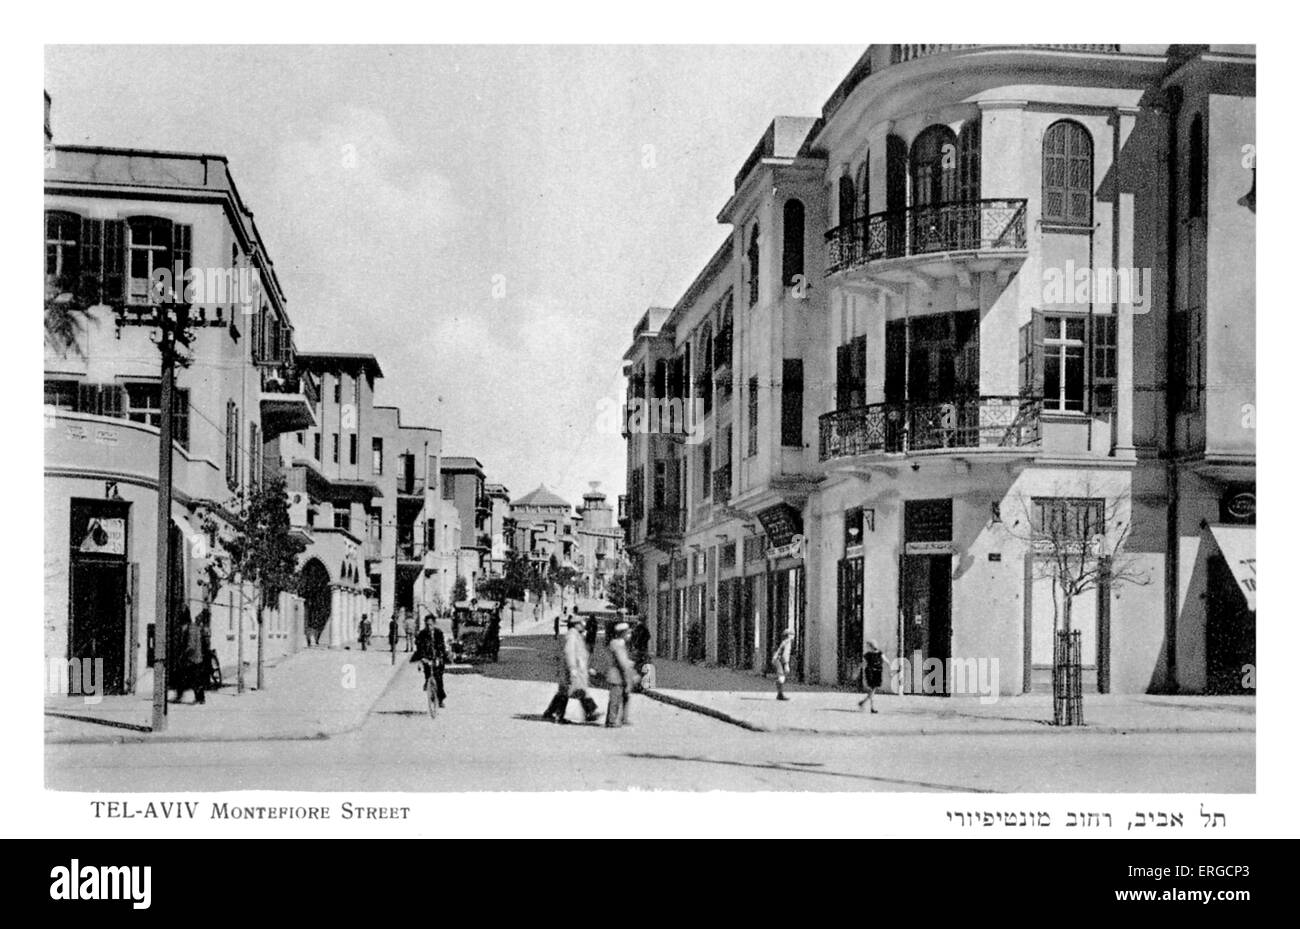 Tel Aviv. Montefiore Street (named after English philanthropist). Ottoman style buildings from turn of 20th century. - Stock Image